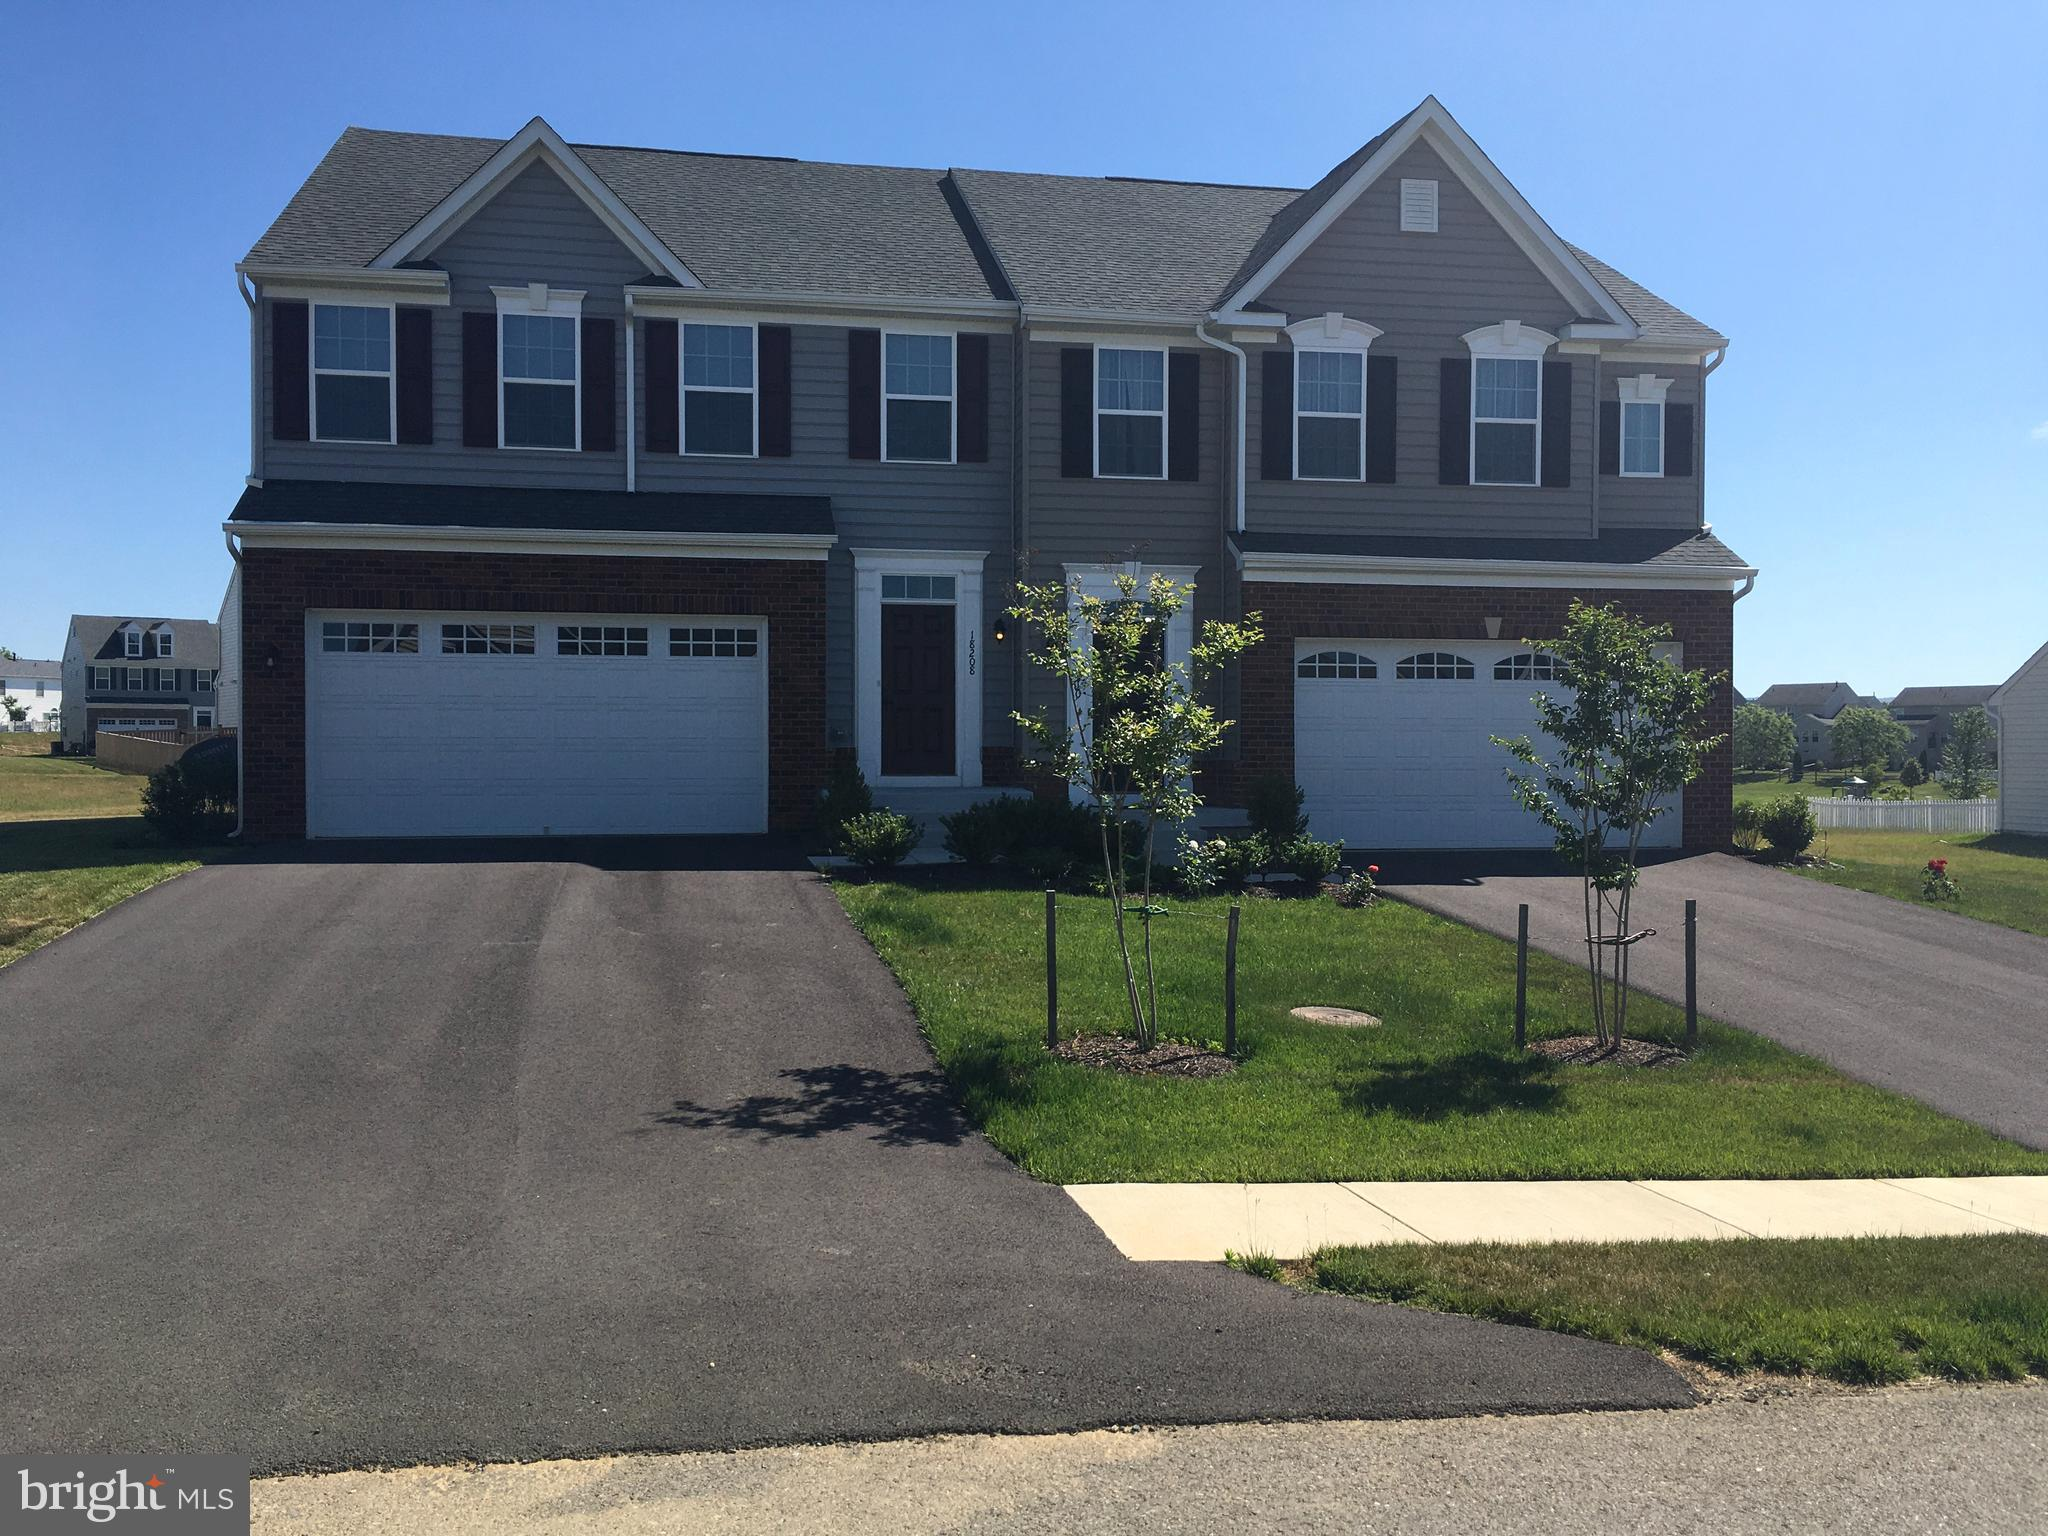 Rare opportunity to own a gorgeous, barely lived in, IMMEDIATE MOVE-IN at Westfields.  In cul-de-sac, 3bdrm, 3.5 baths, 2-car garage villa style duplex with full basement with optional 4th bedroom. This home comes with Ecobee System. Offering every upgrade you can imagine:  luxury flooring, amazingly upgraded appliances/granite counters/recessed lighting/heavily padded carpet/upgraded tile/..the list goes on! Downstairs has a finished recreation area, full bathroom, and storage area. Upstairs has three nicely appointed bedrooms, full bathroom with soaking tub, master suite with his and her walk in closet, master bath with double shower head! Featuring pool, tennis and basketball courts, walking trails and walking distance to community elementary school and other amenities! Just 3 miles to I-70. Look no further; you are home!